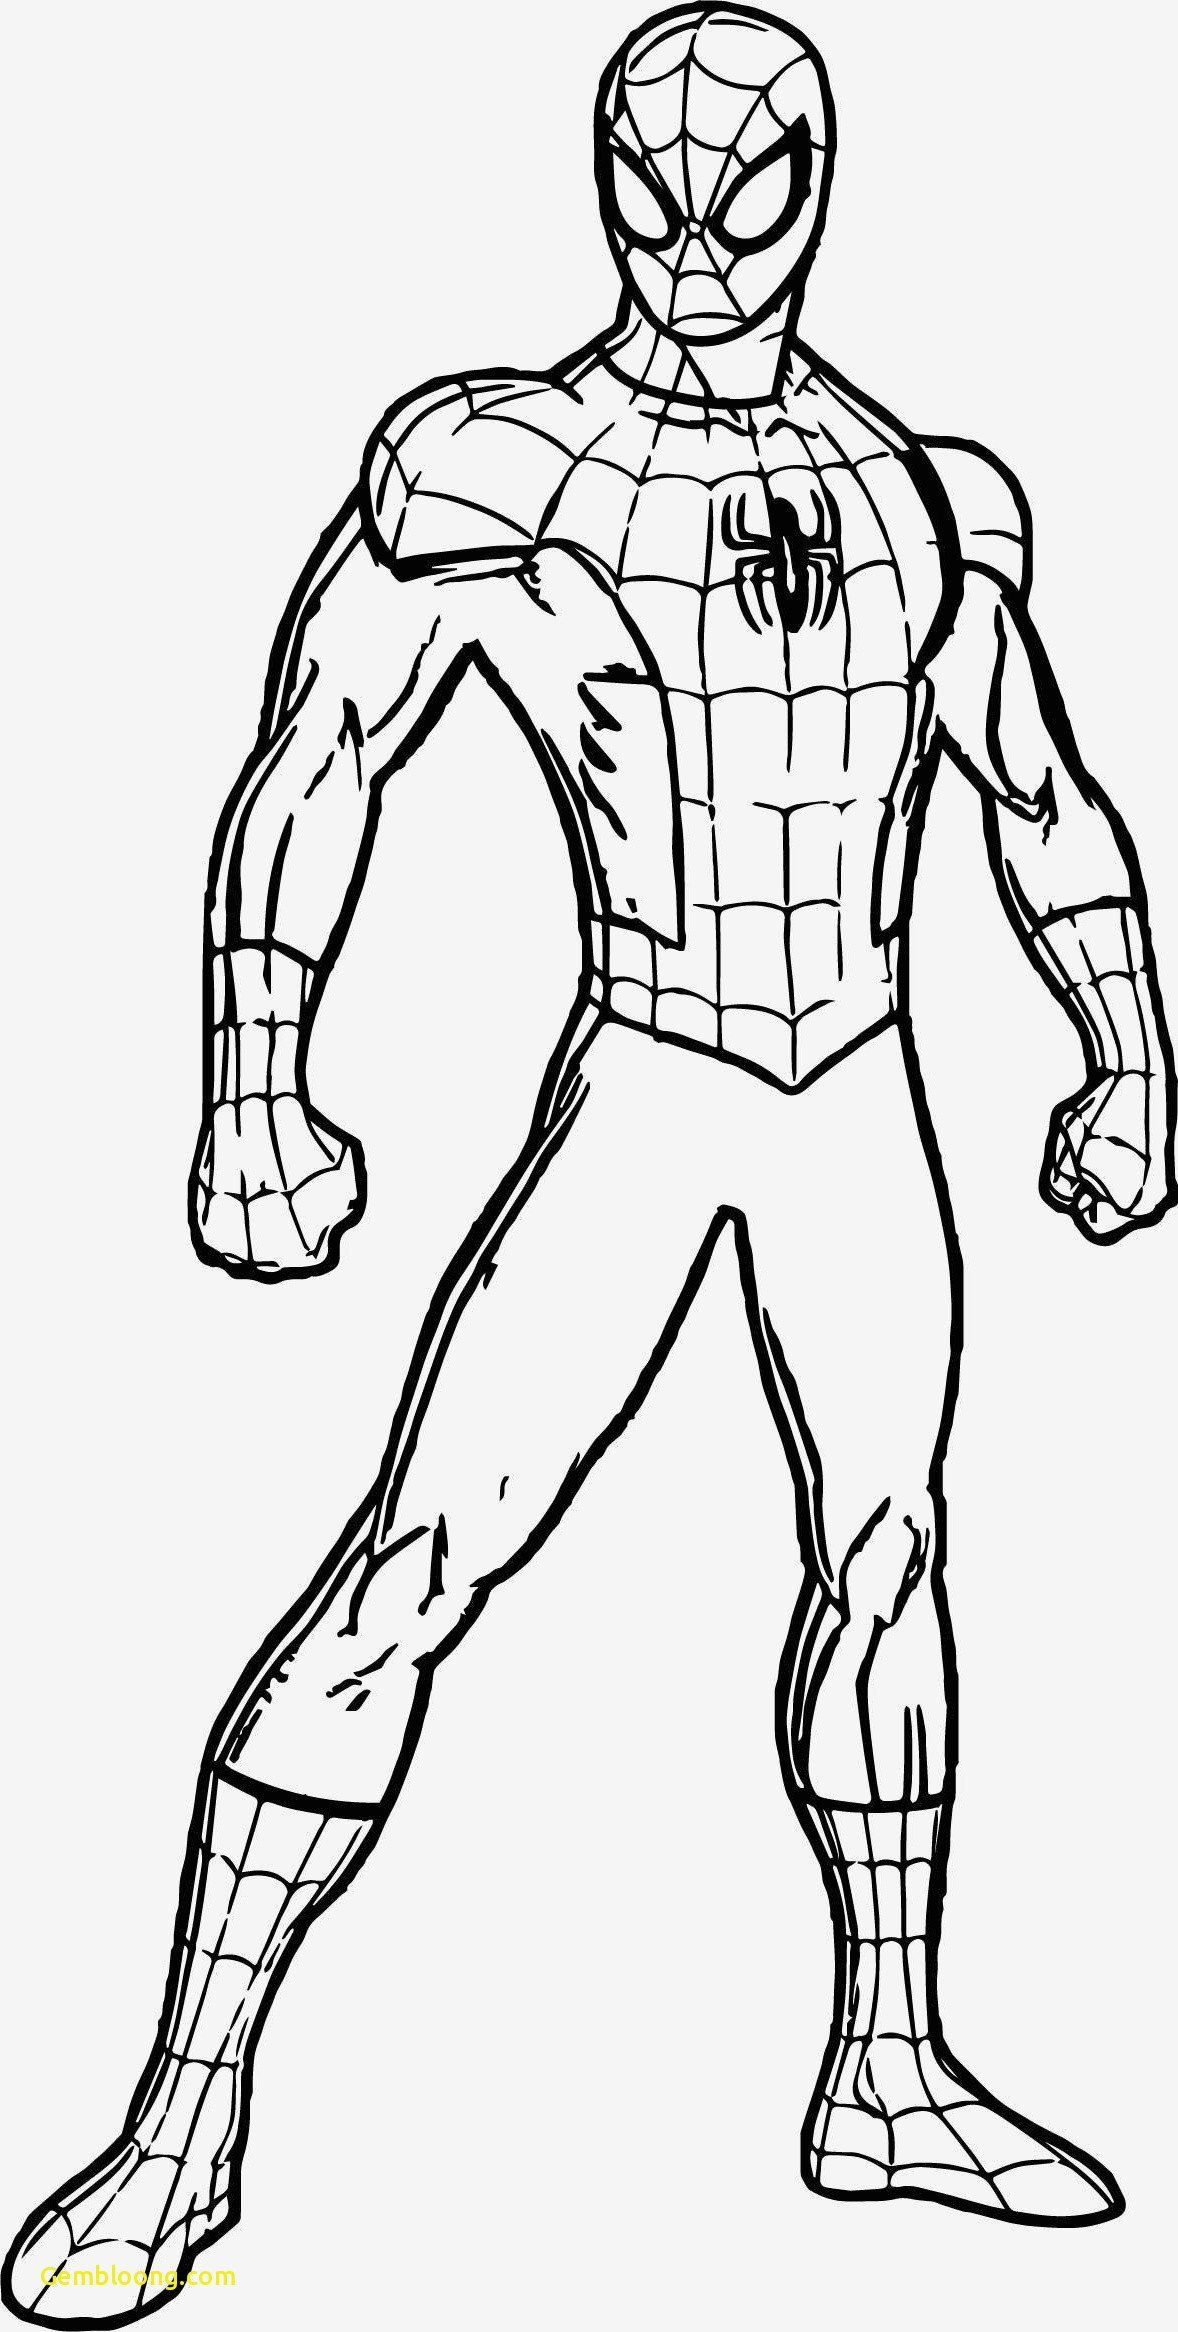 Pictures of Black Spiderman Coloring Page - Free Coloring Pages Online | 2332x1178